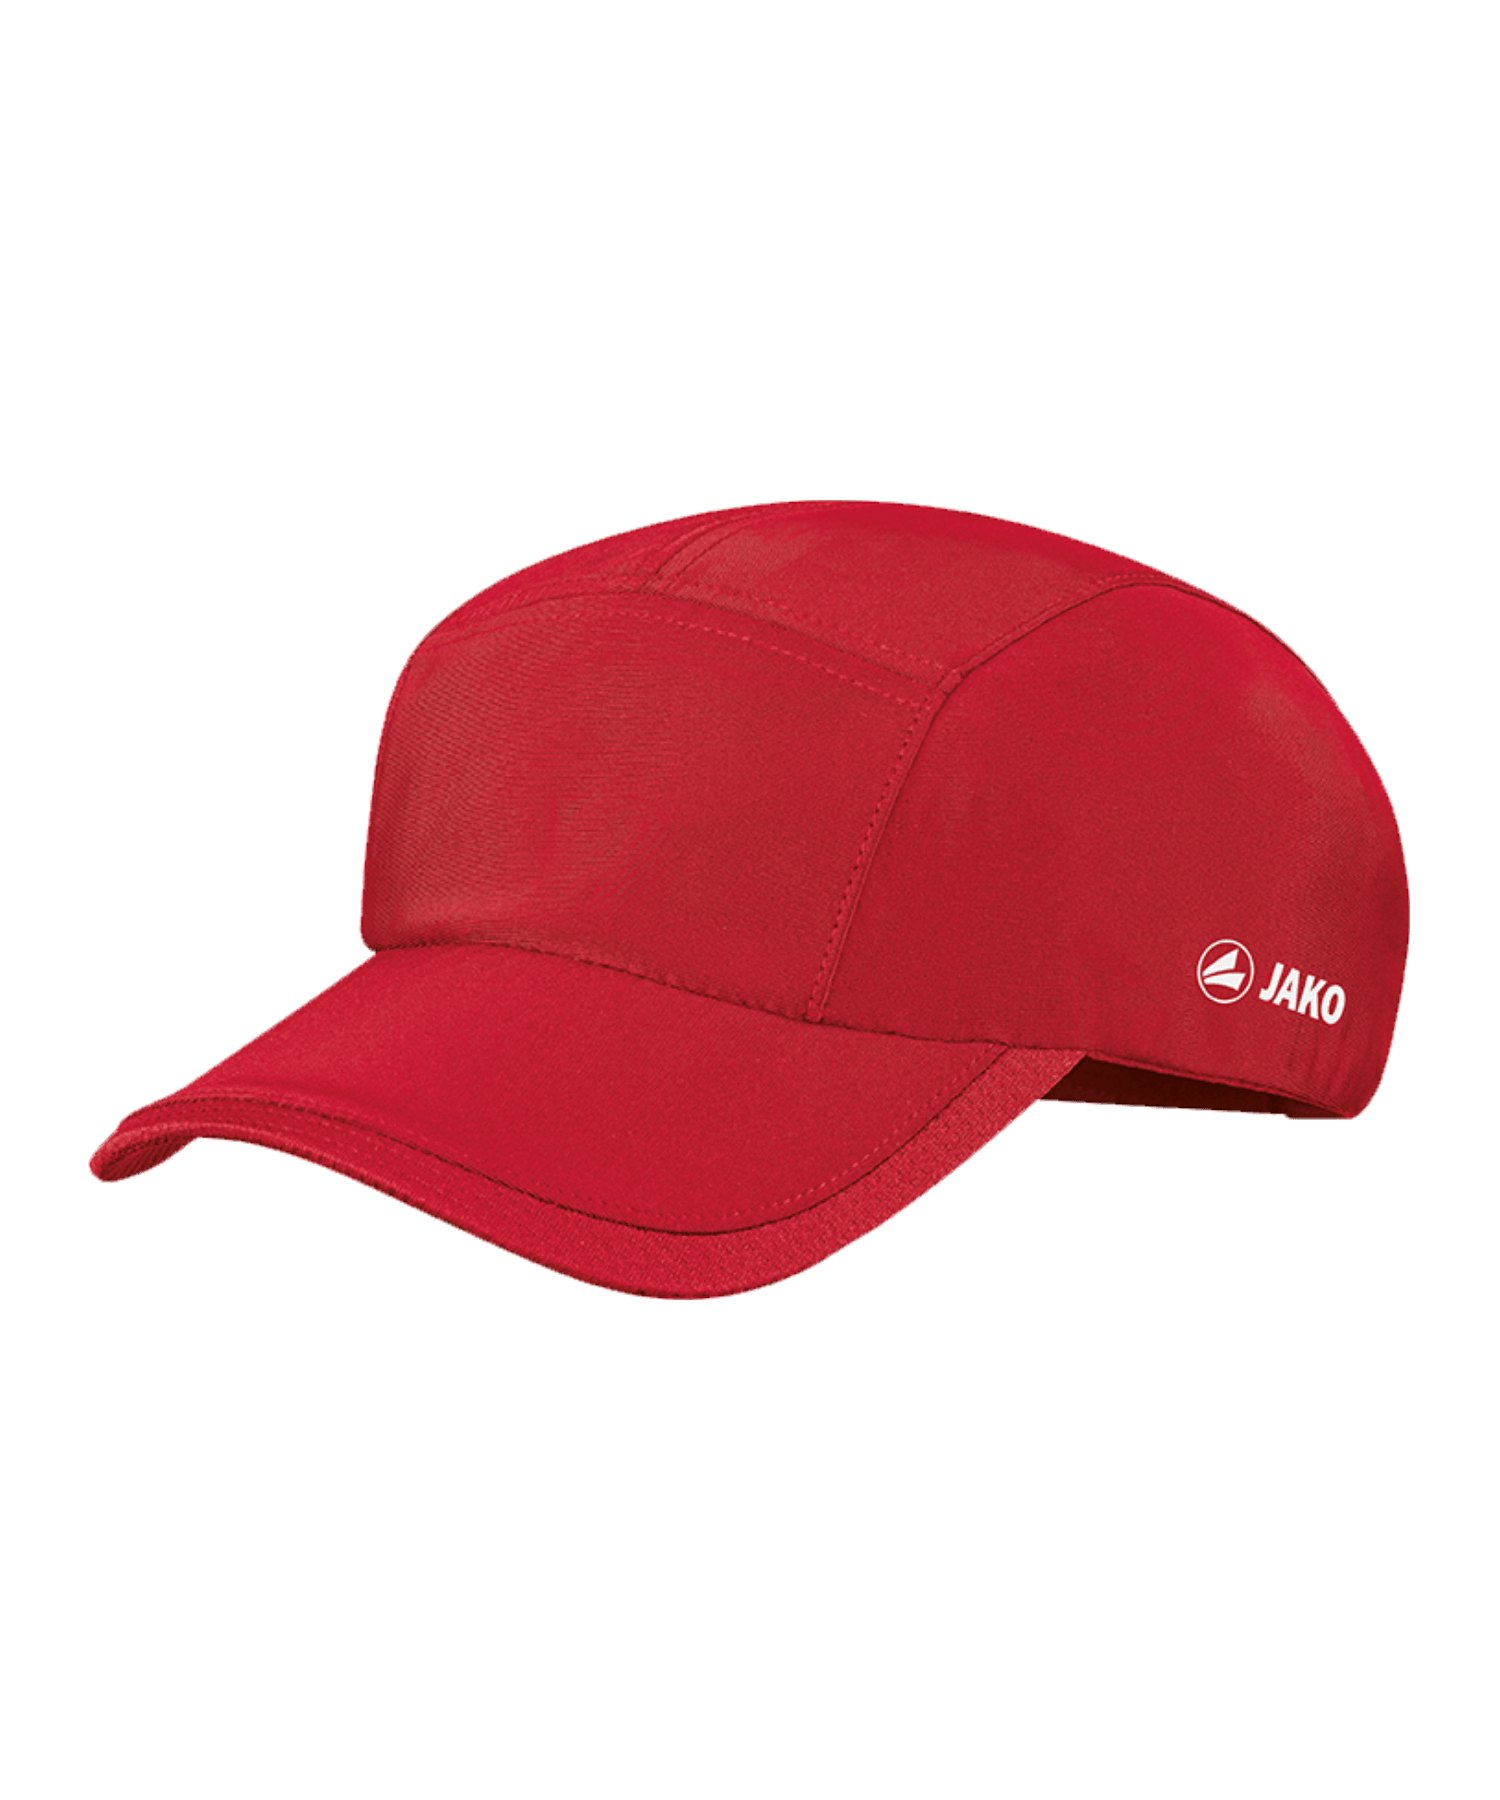 JAKO Funktionscap Rot F01 - rot